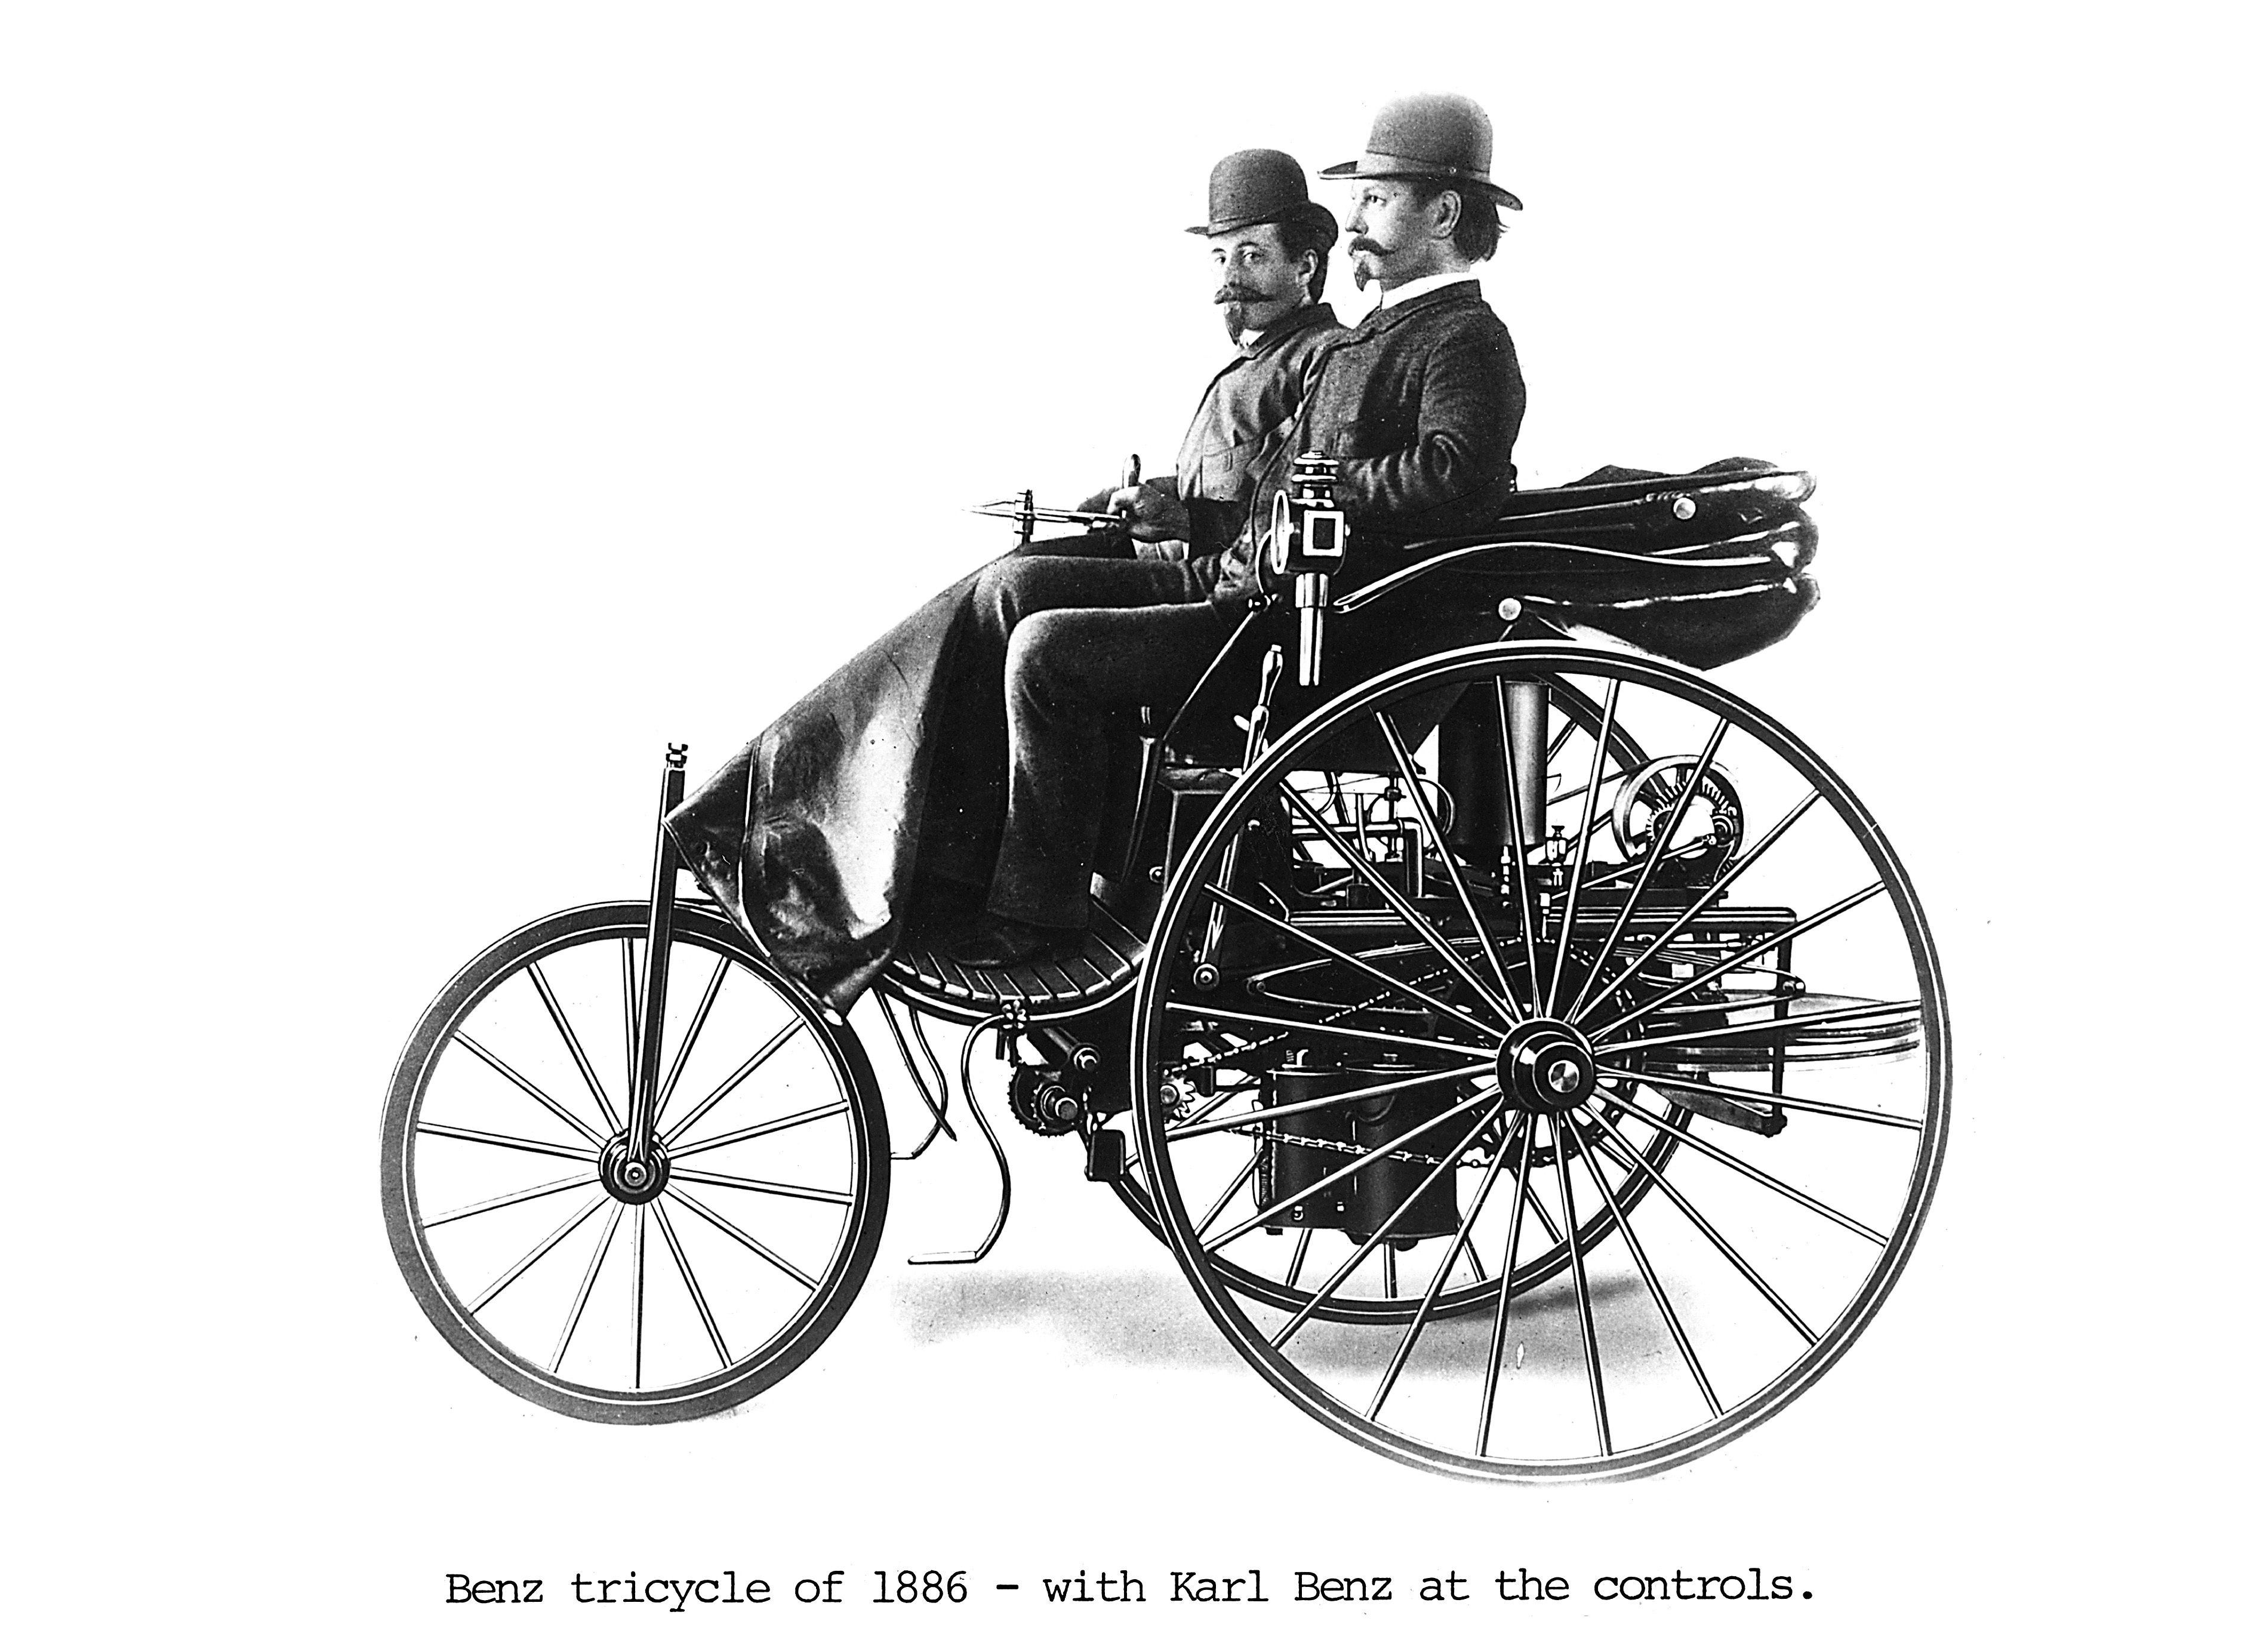 major inventions of the 19th century